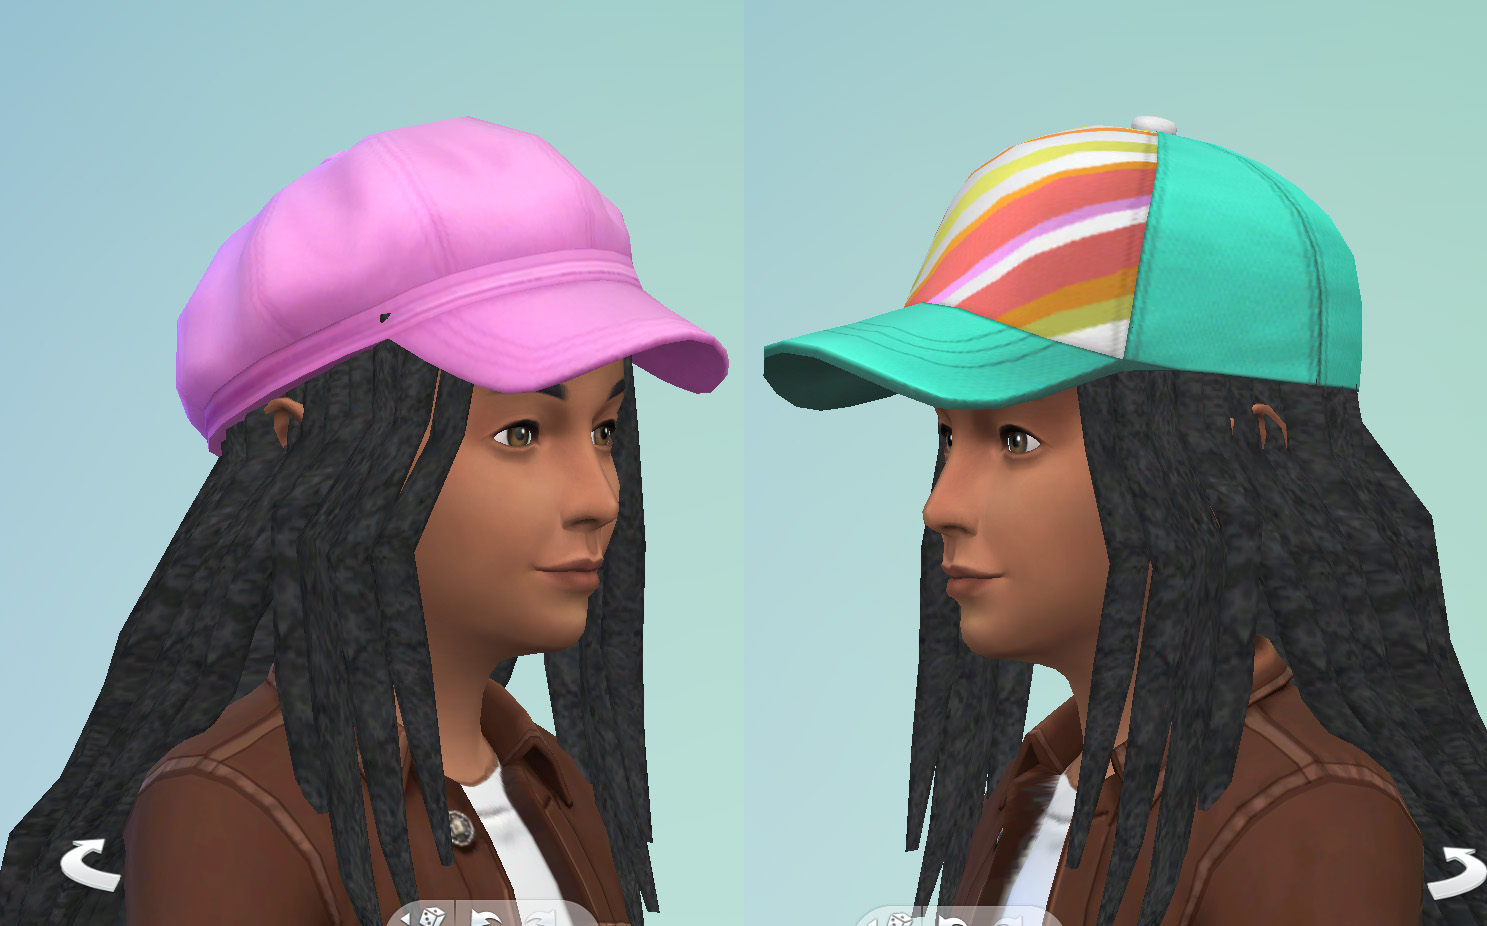 Bob Marley Dreads Unisex Child To Elder For Sims 4 - Madreview net